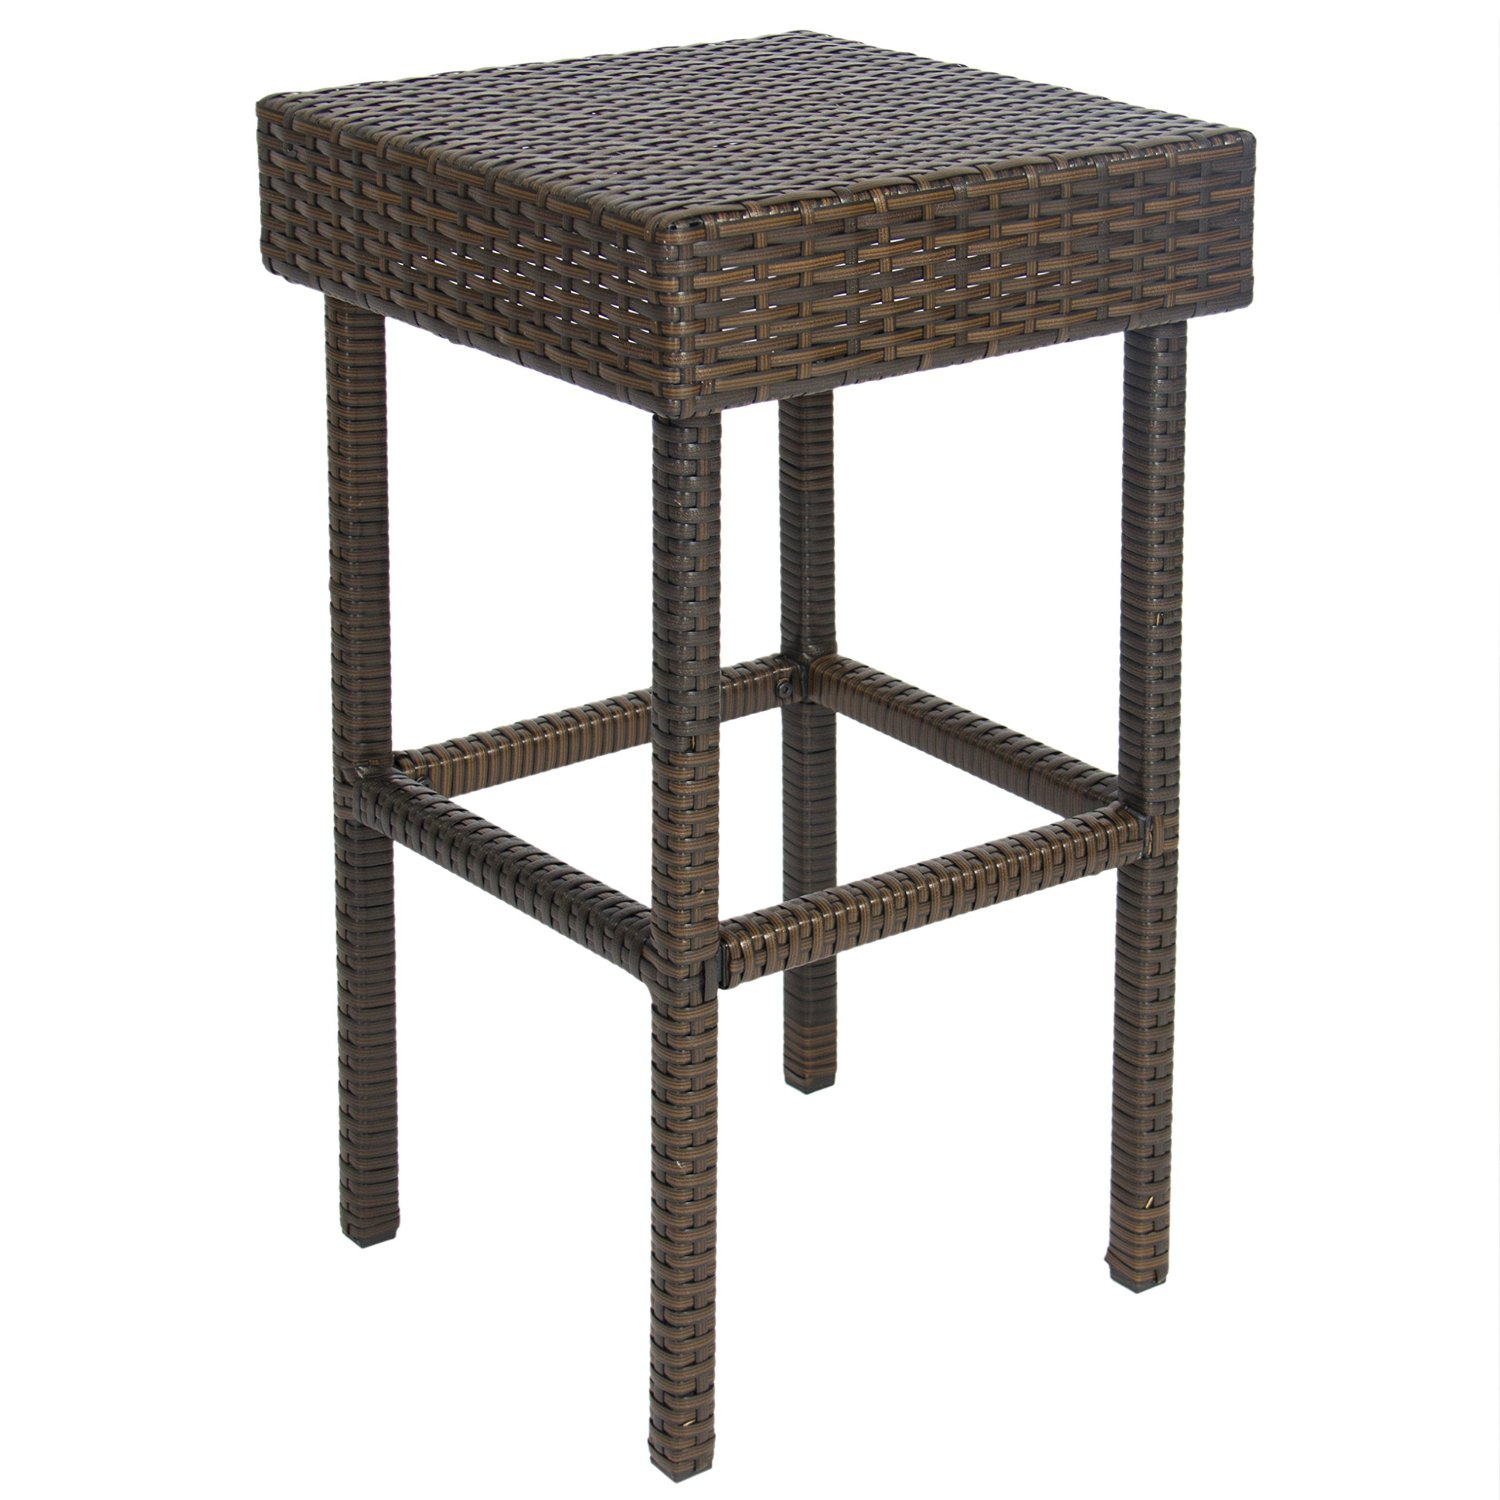 3PC Wicker Bar Set Patio Outdoor Backyard Table amp 2 Stools  : 3PC2BWicker2BBar2BSet2BPatio2BOutdoor2BBackyard2BTable2B25262B22BStools2BRattan2BGarden2BFurniture2 from outdoorpatiofurnituresofa.blogspot.co.id size 1500 x 1500 jpeg 193kB